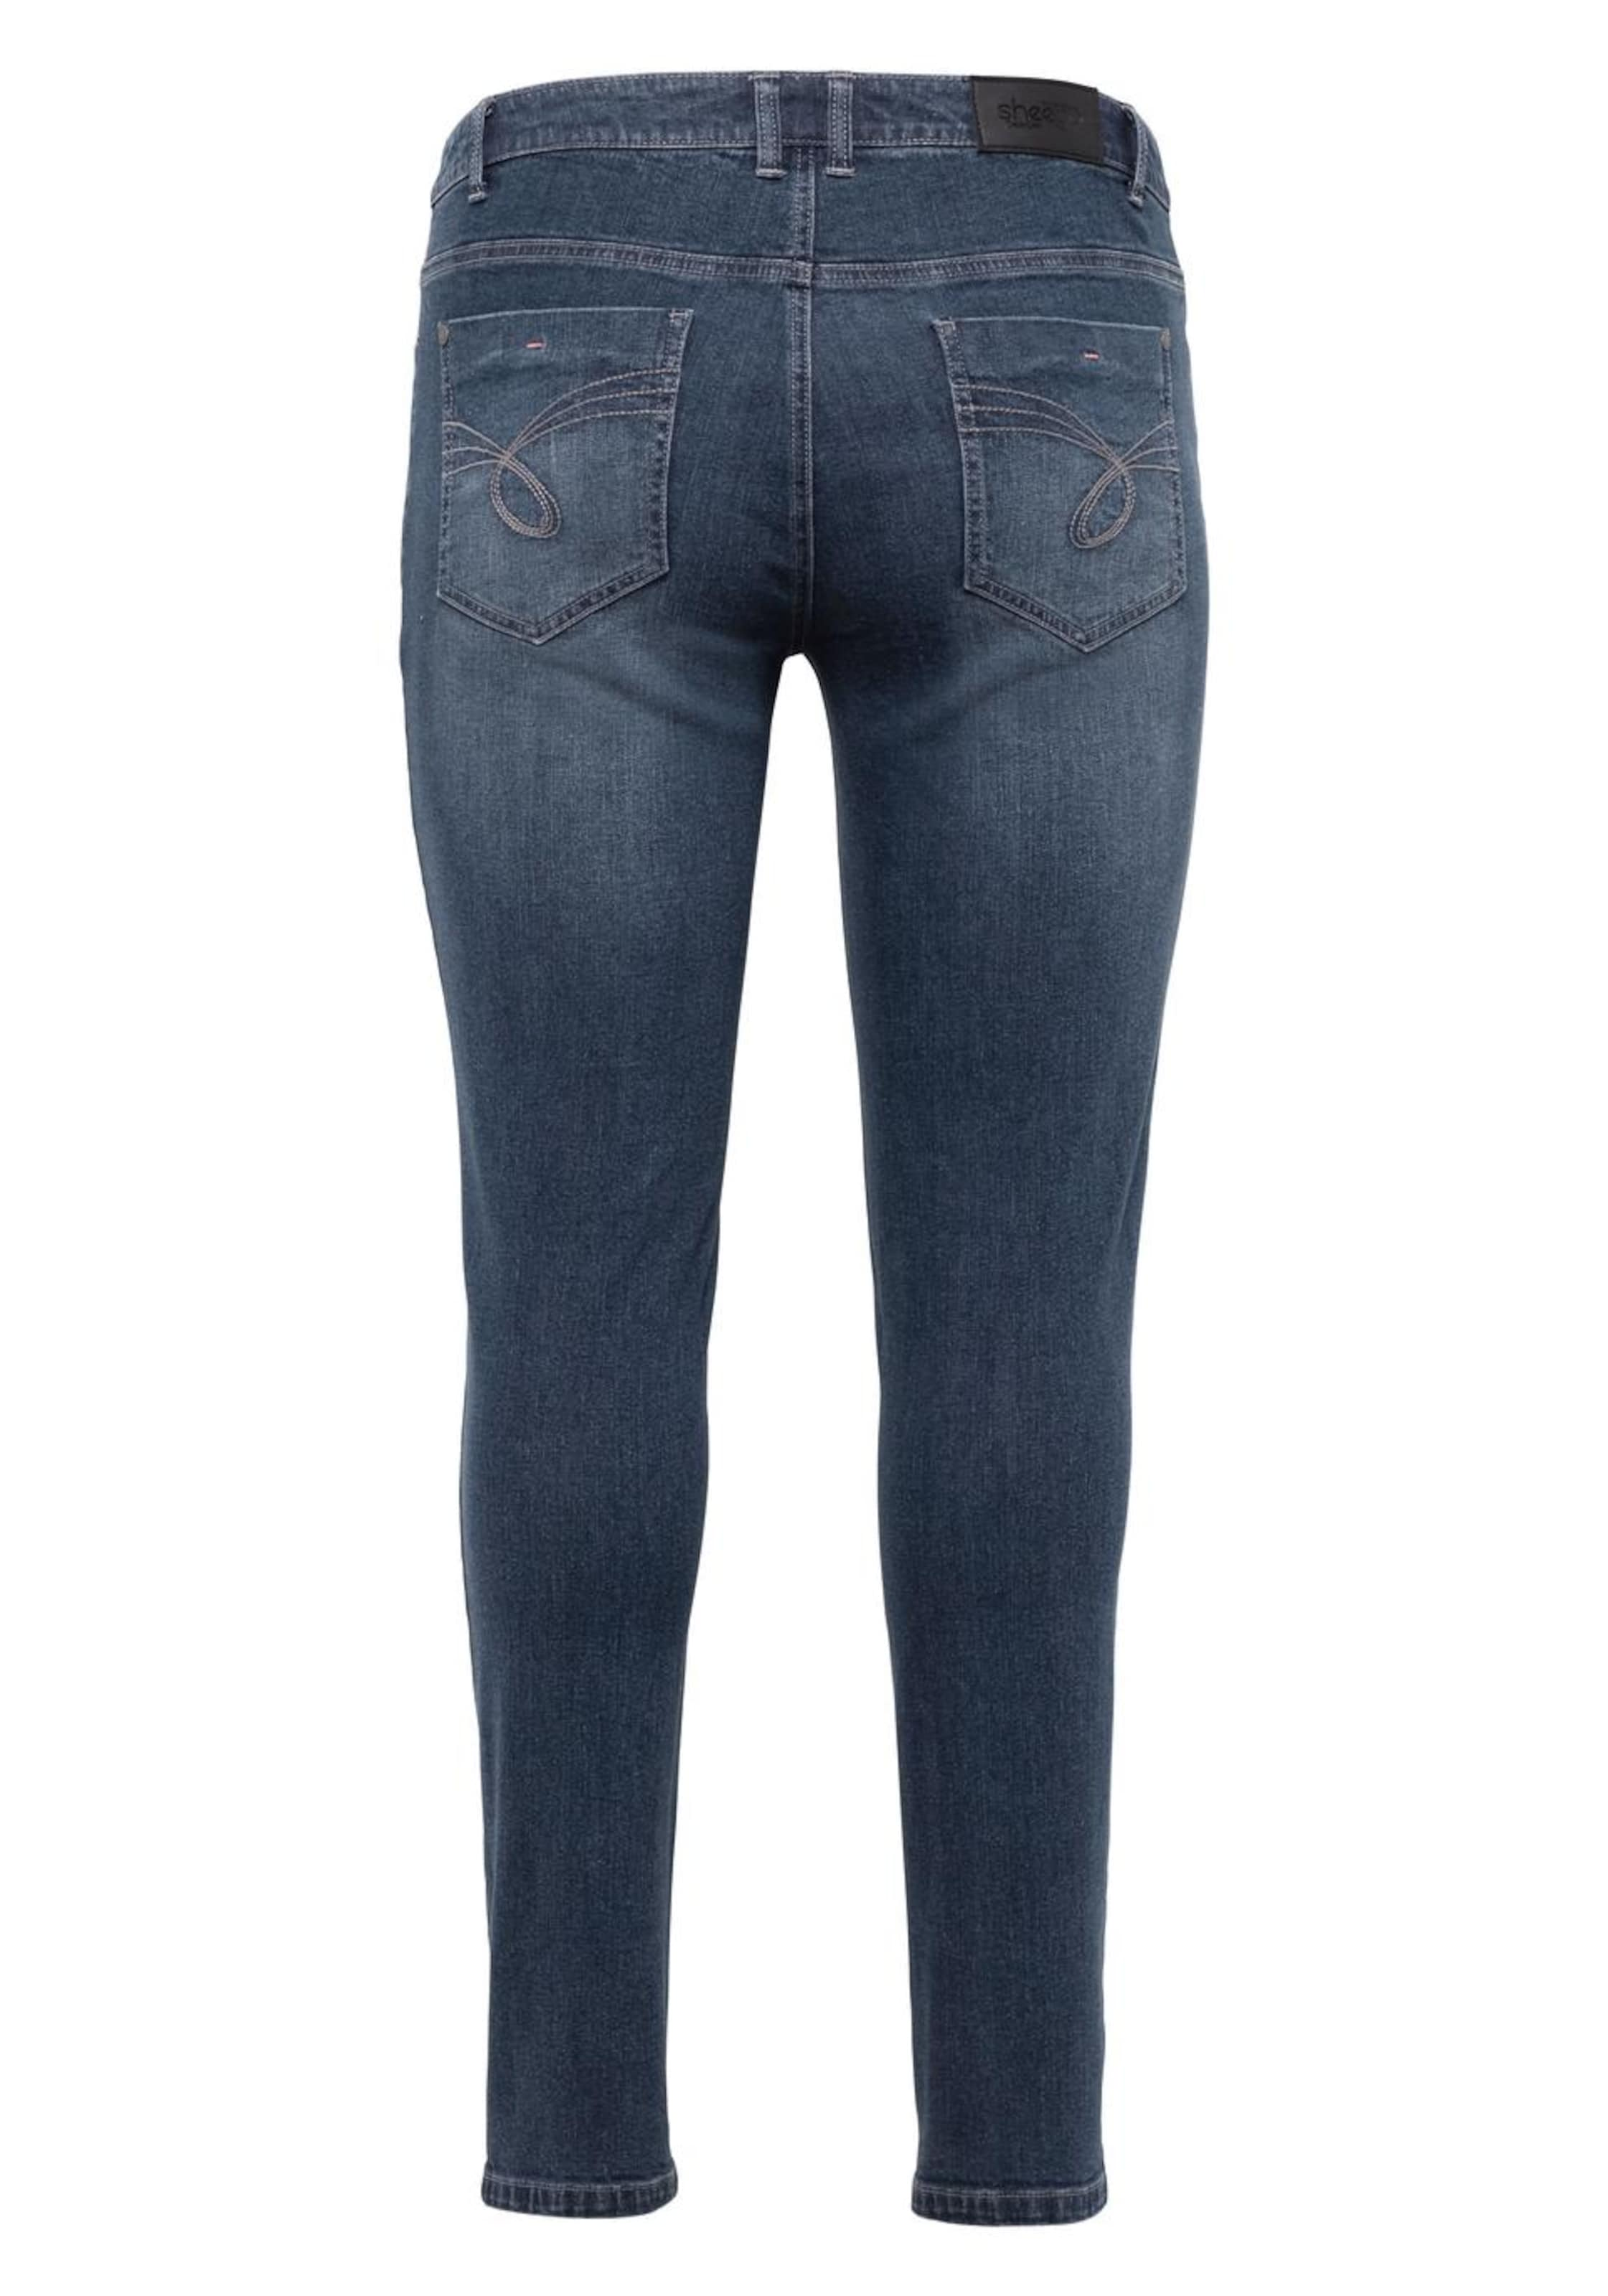 Jeans Jeans Denim Denim Sheego In In Sheego Dunkelblau Dunkelblau Denim Sheego 0wNyvnmO8